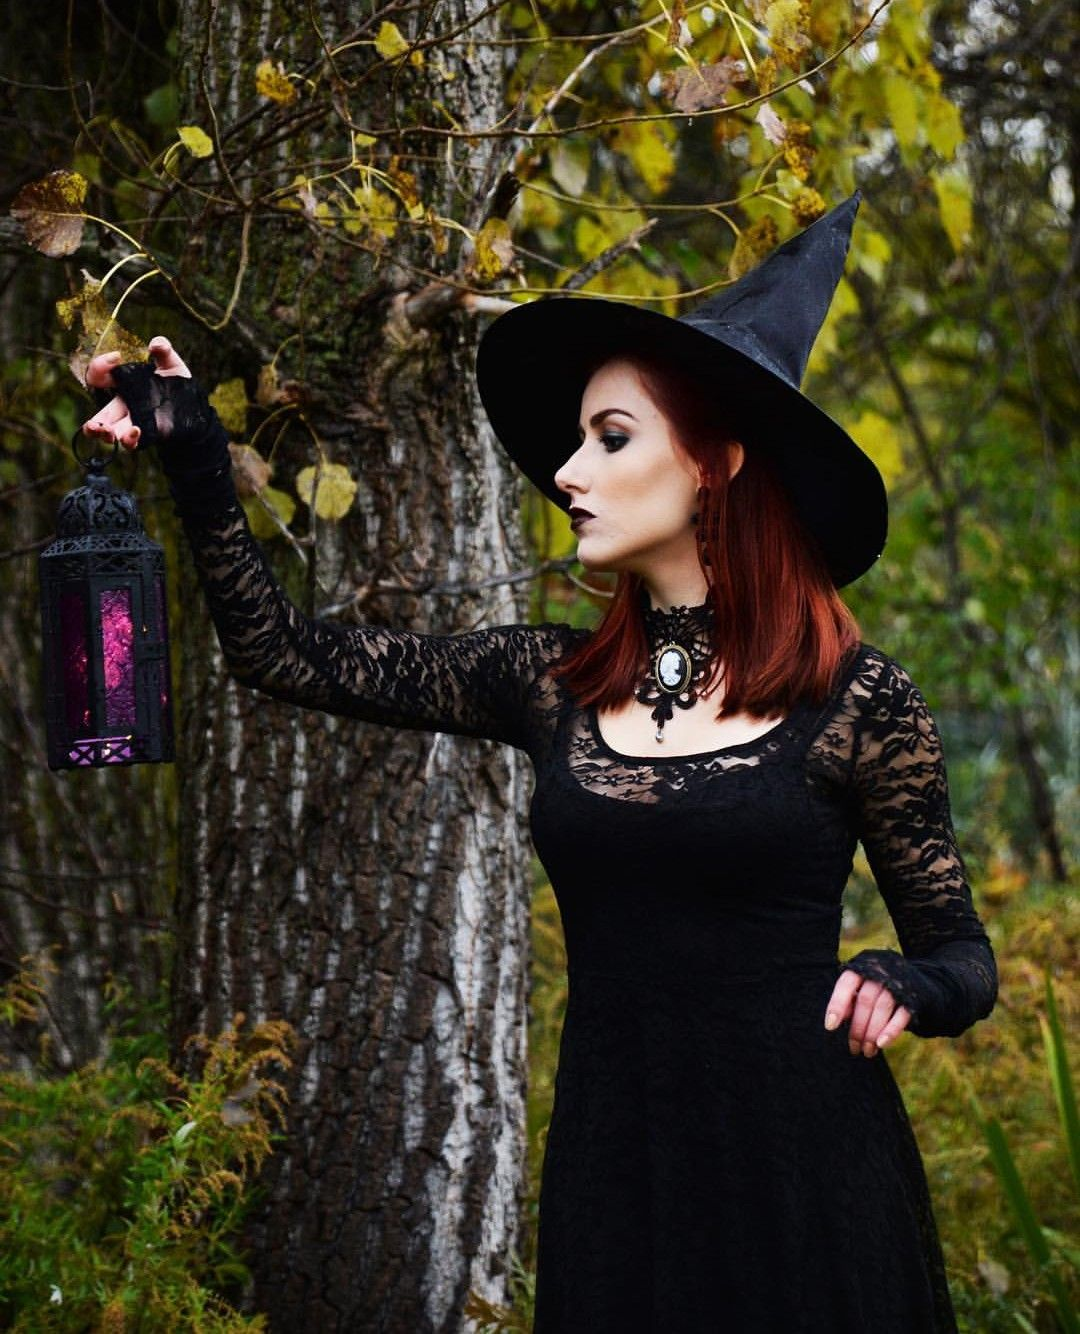 Pin by Alice Premeau on Halloween photoshoot Halloween